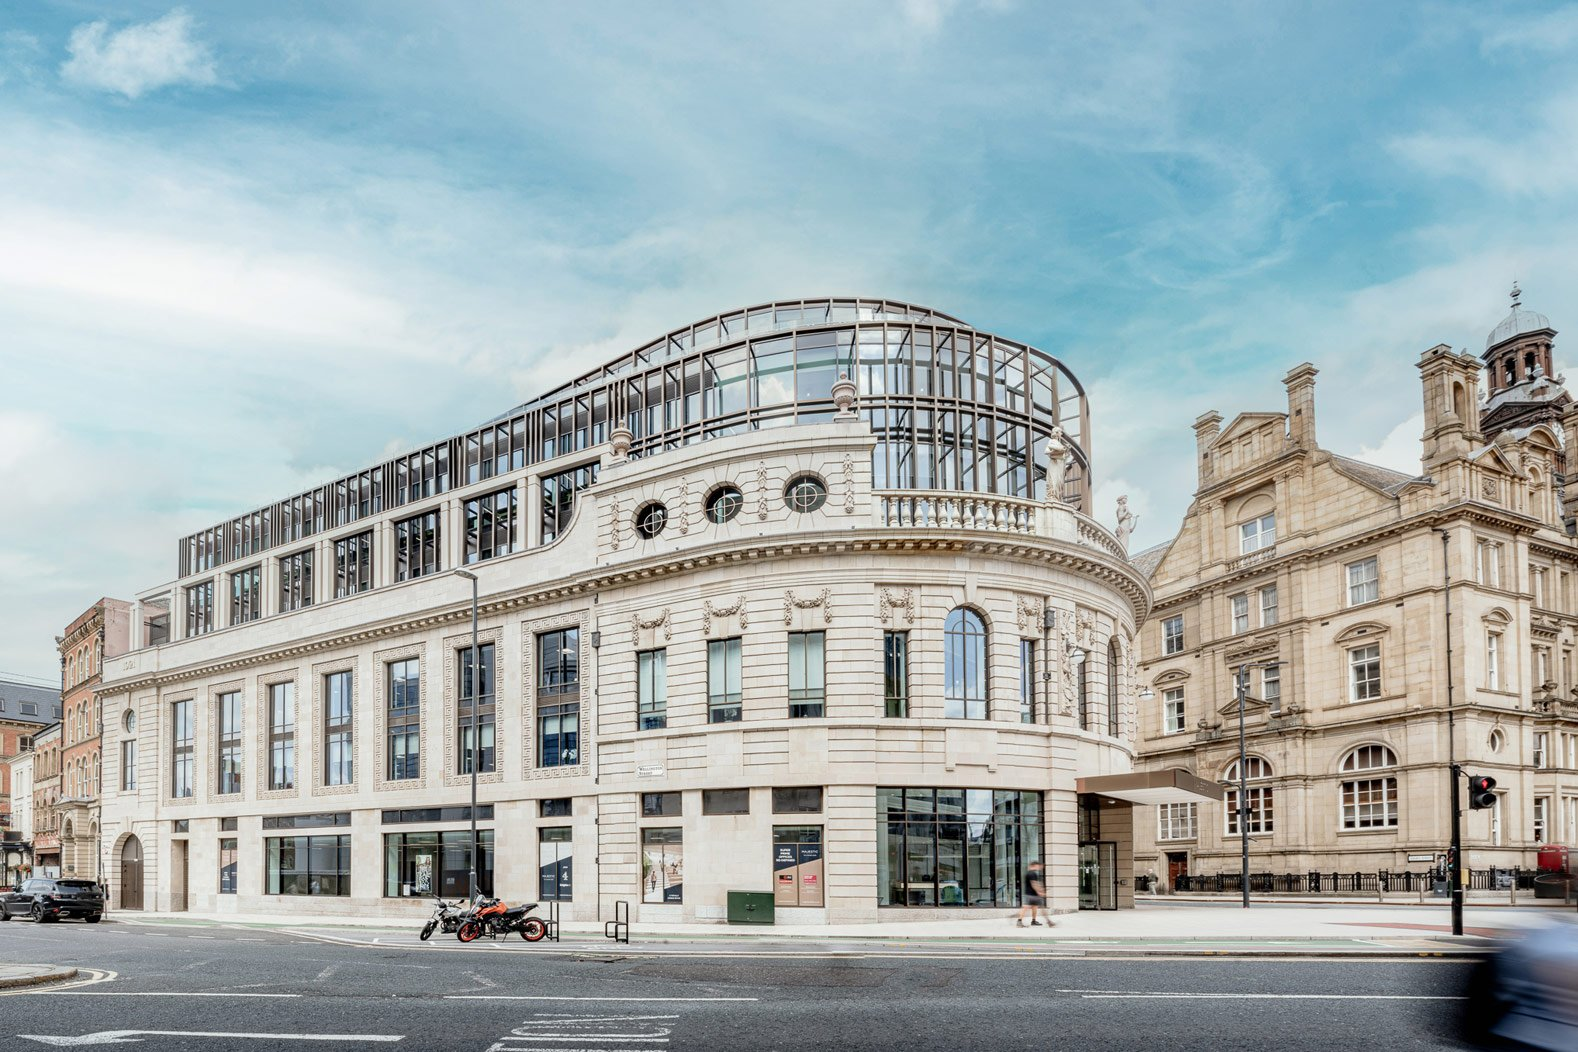 The Majestic, Leeds, View from railway station entrance, Photography by Stevie Campbell